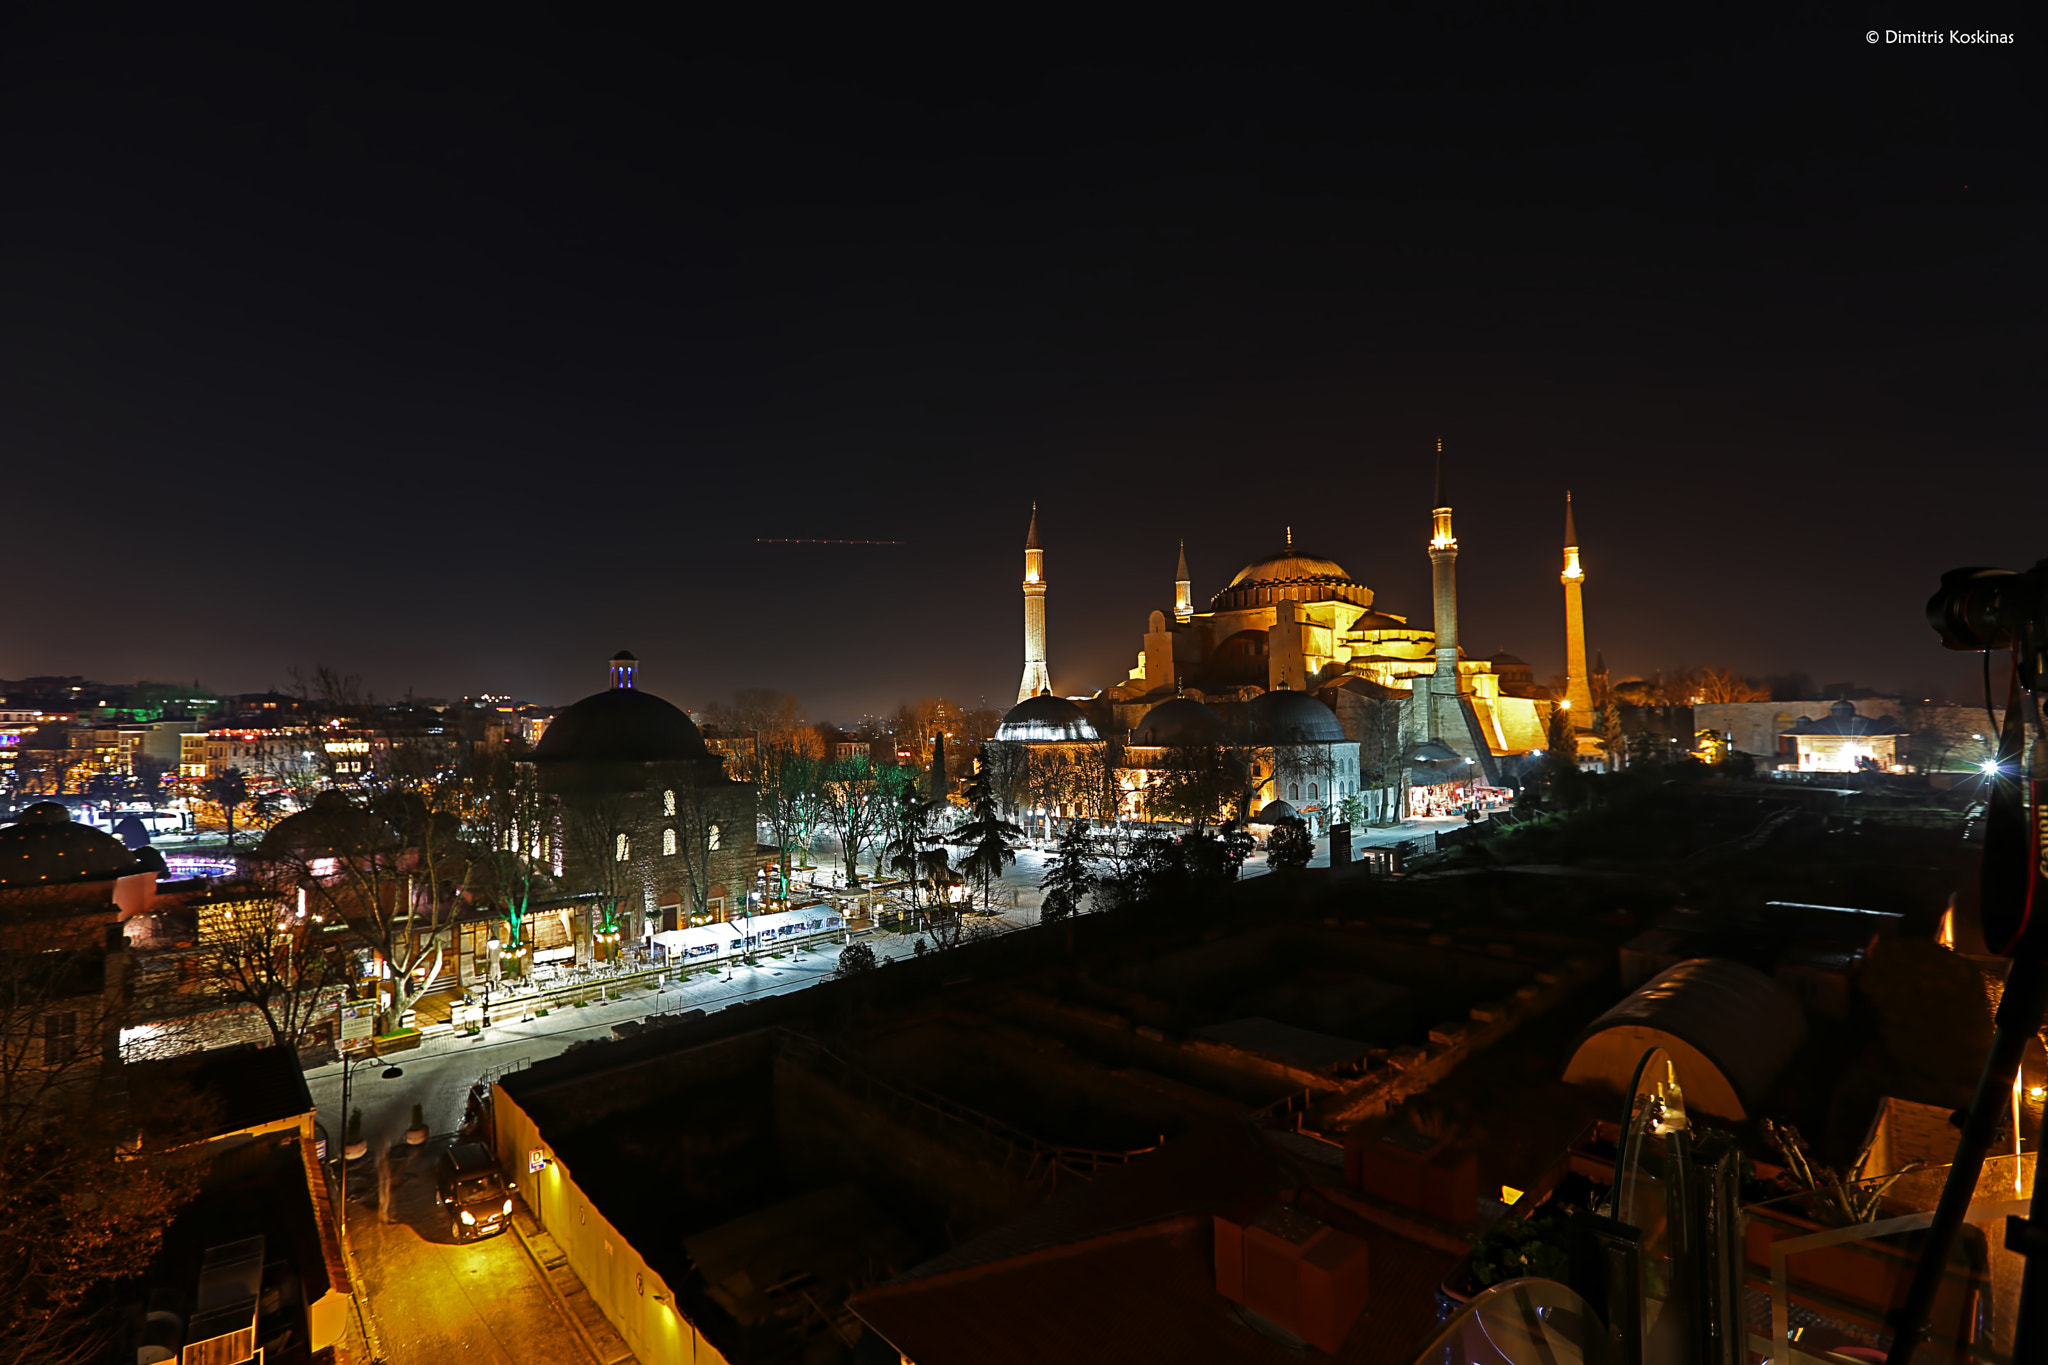 Photograph Hagia Sophia by Dimitris Koskinas on 500px